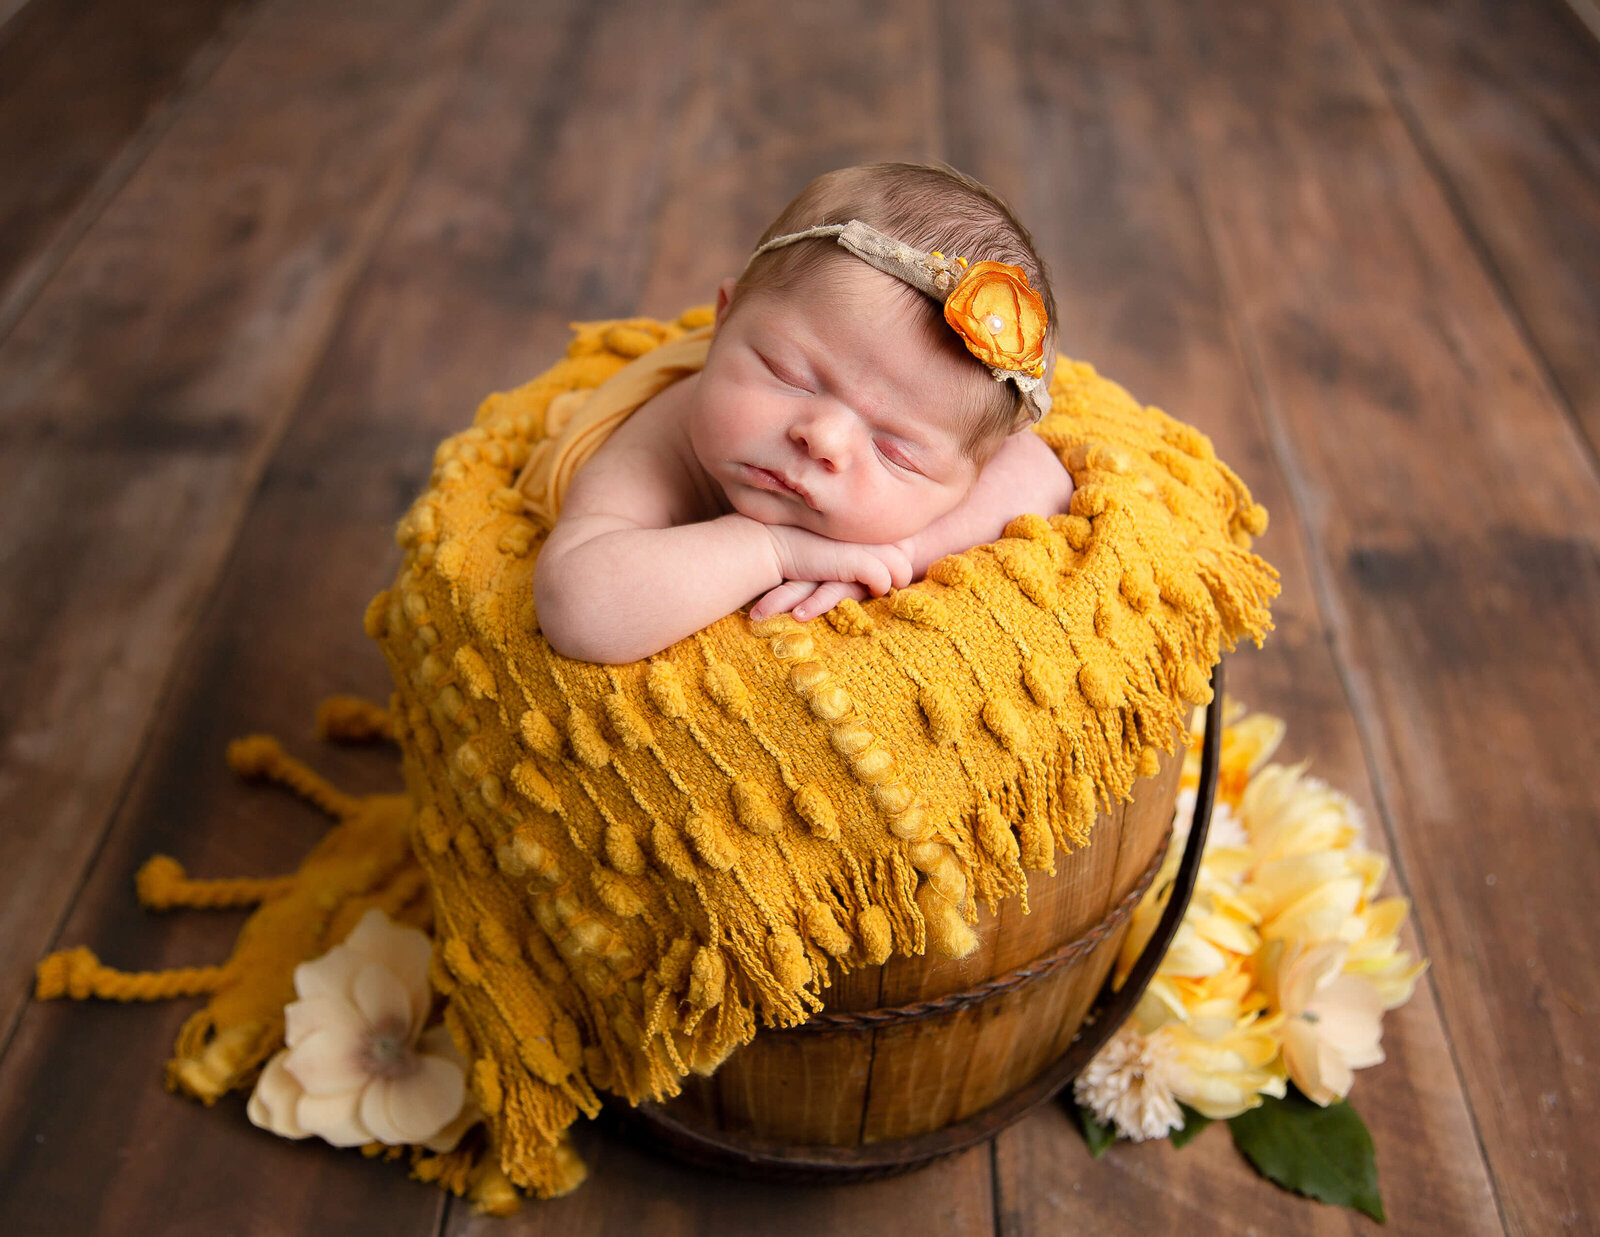 Adorable newborn girl posed at. our in-home Rochester, NY studio.